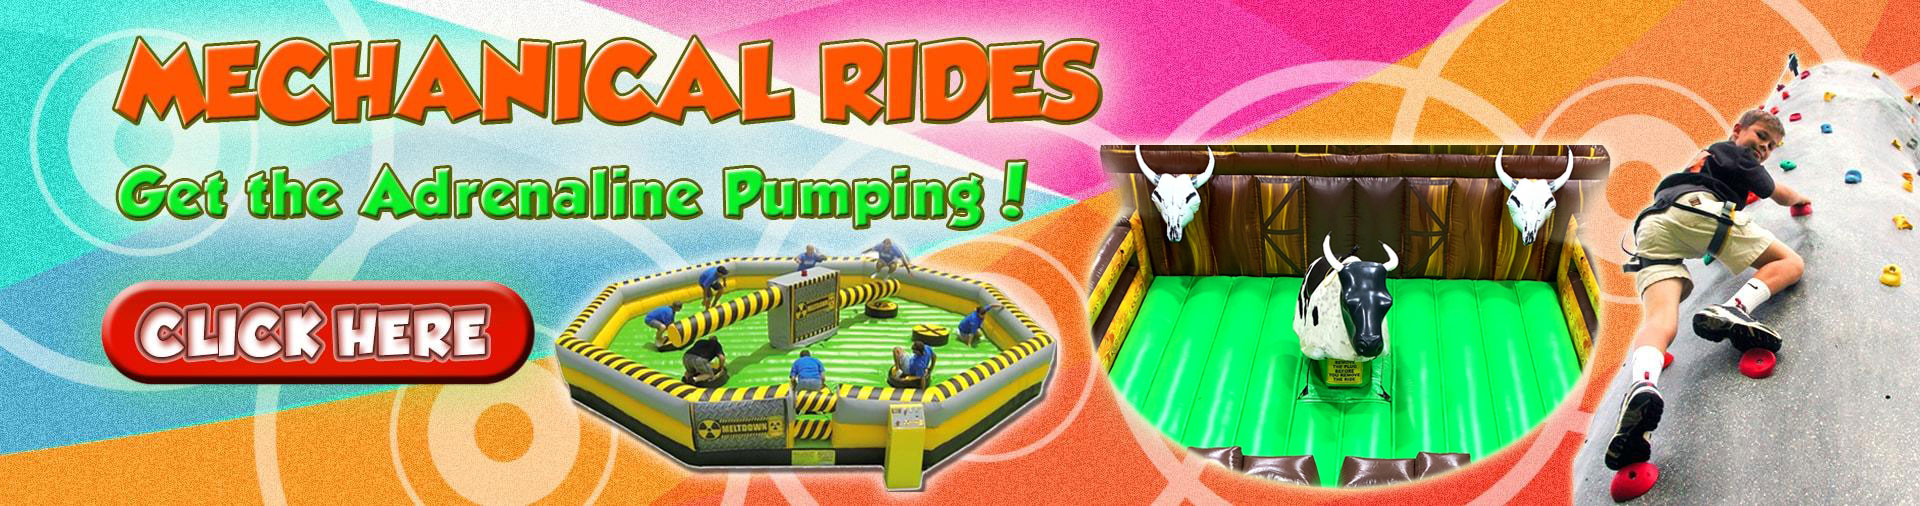 Mechanical Ride Rentals